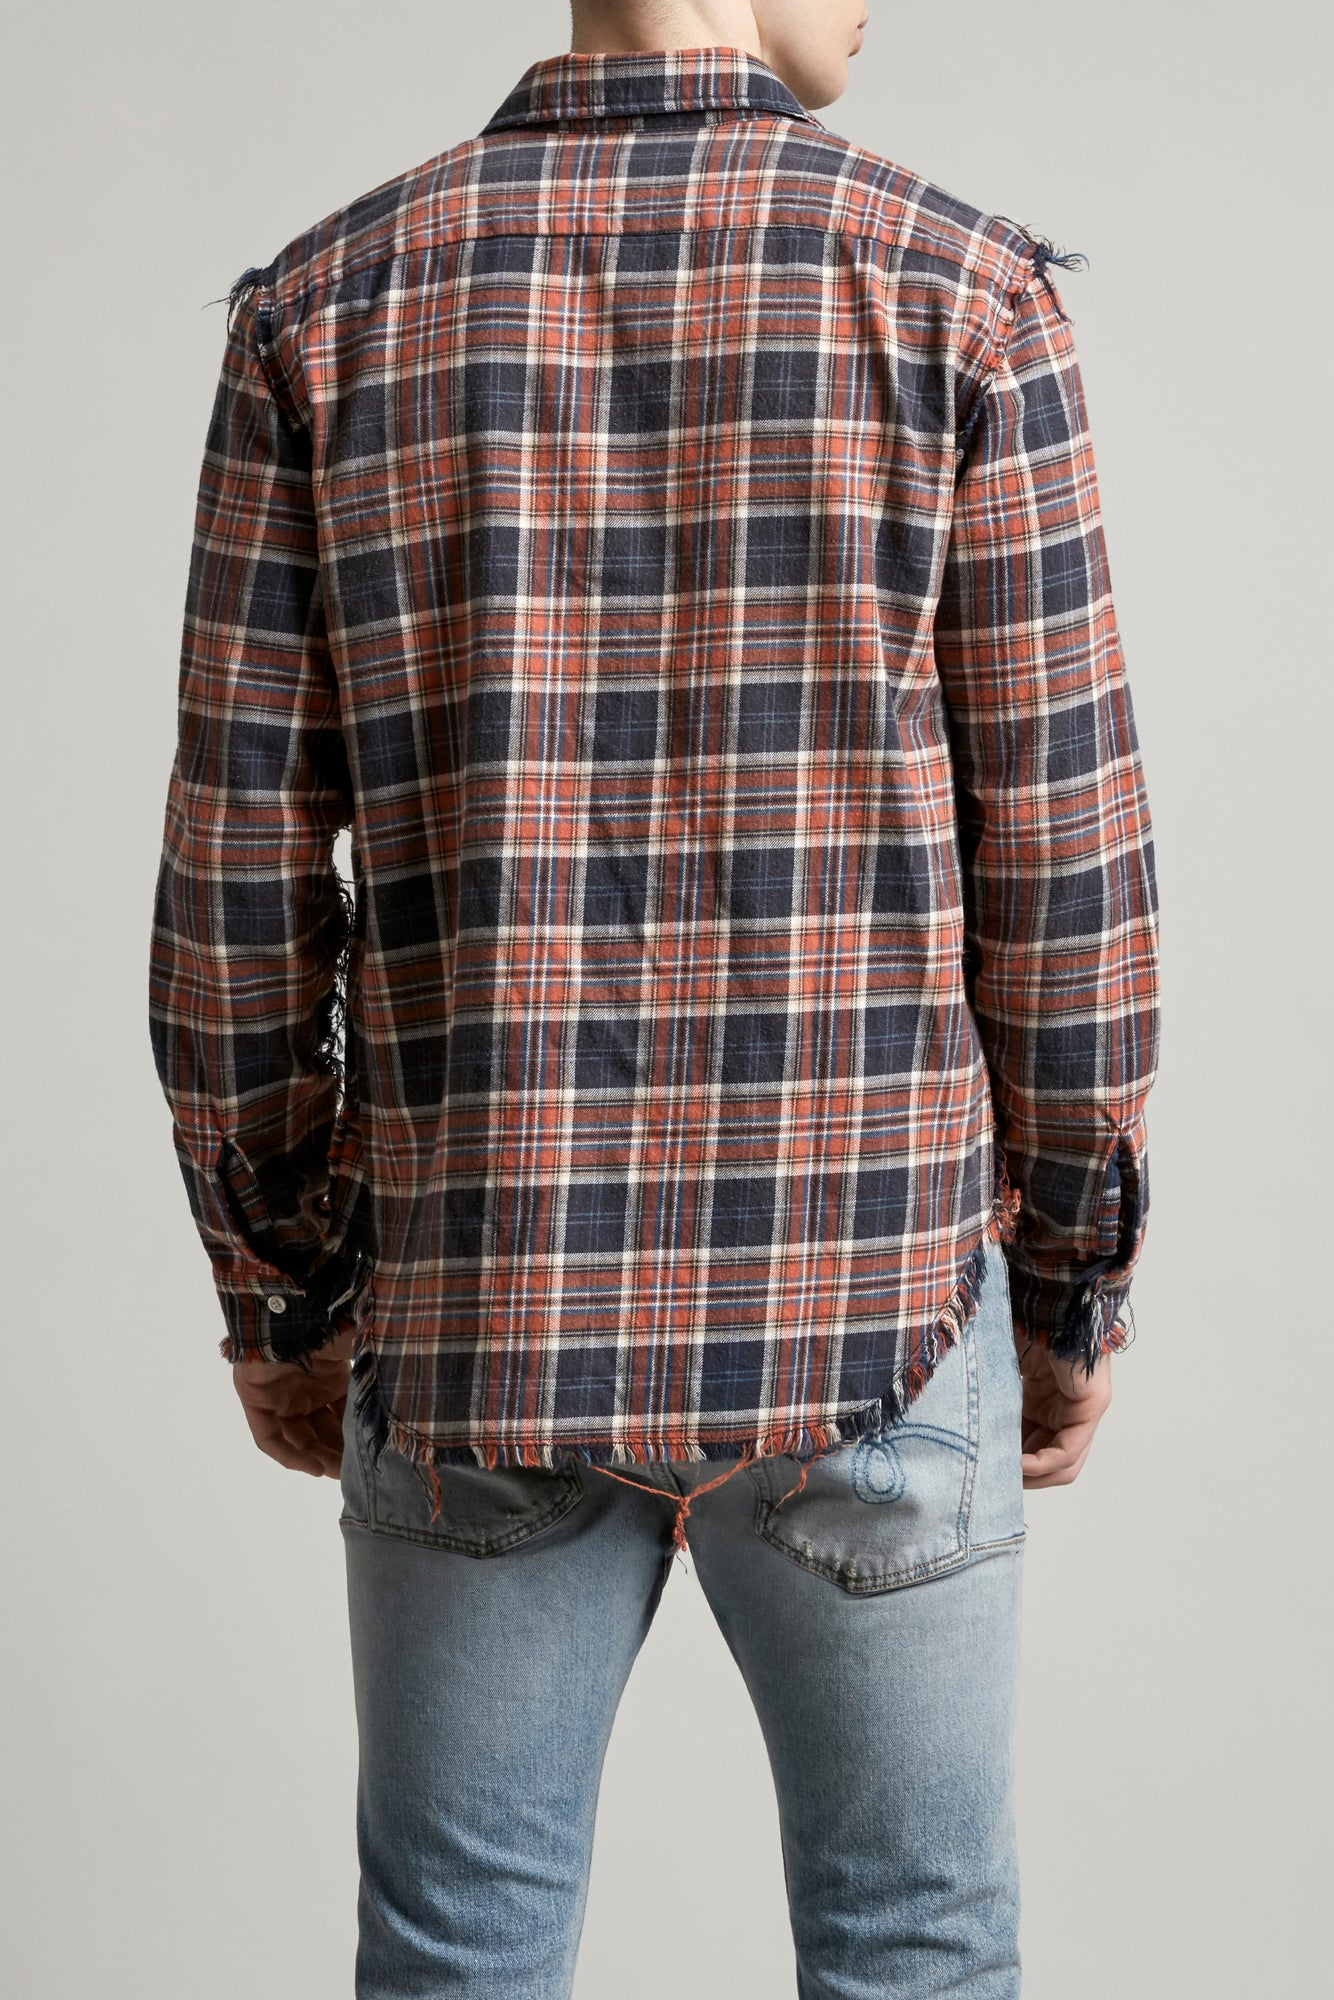 Shredded Seam Shirt - Blue/Red Plaid